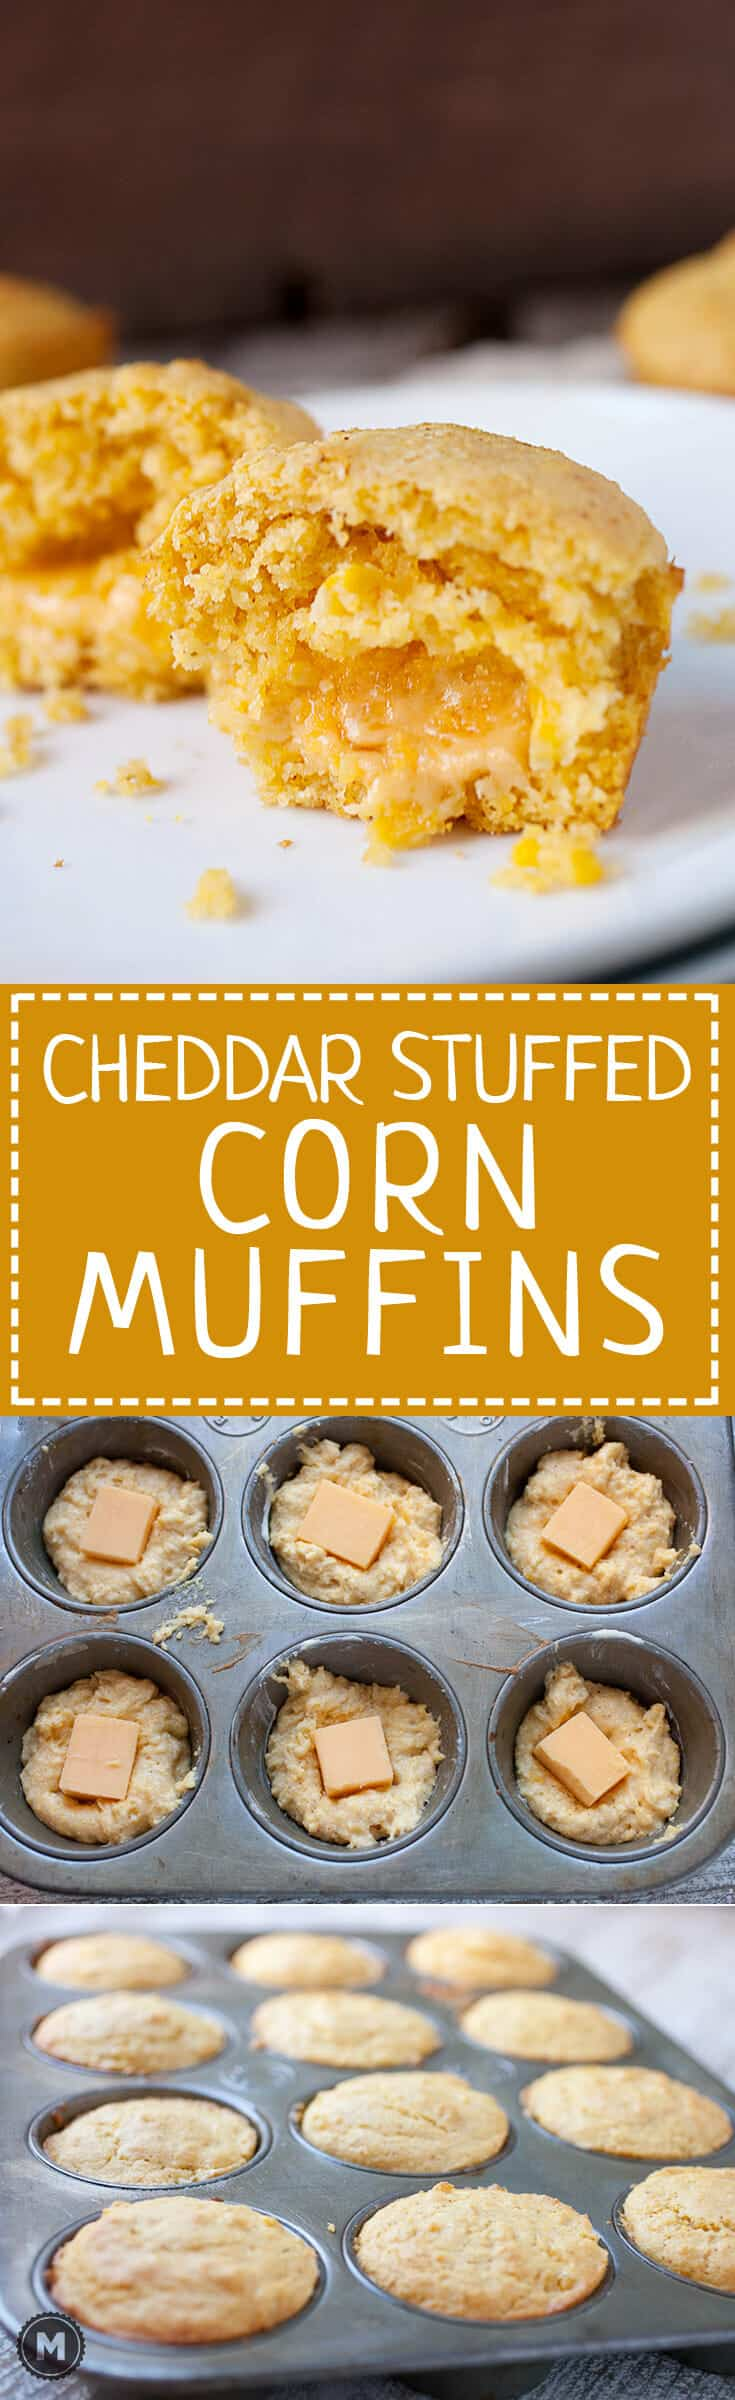 Cheddar Stuffed Corn Muffins: These delicious and savory corn muffins are stuffed with a huge chunk of cheddar cheese. It's like a little bonus when you break into the muffin. Good as a side dish for so many meals. It's the corn muffin you've been waiting for! | macheesmo.com